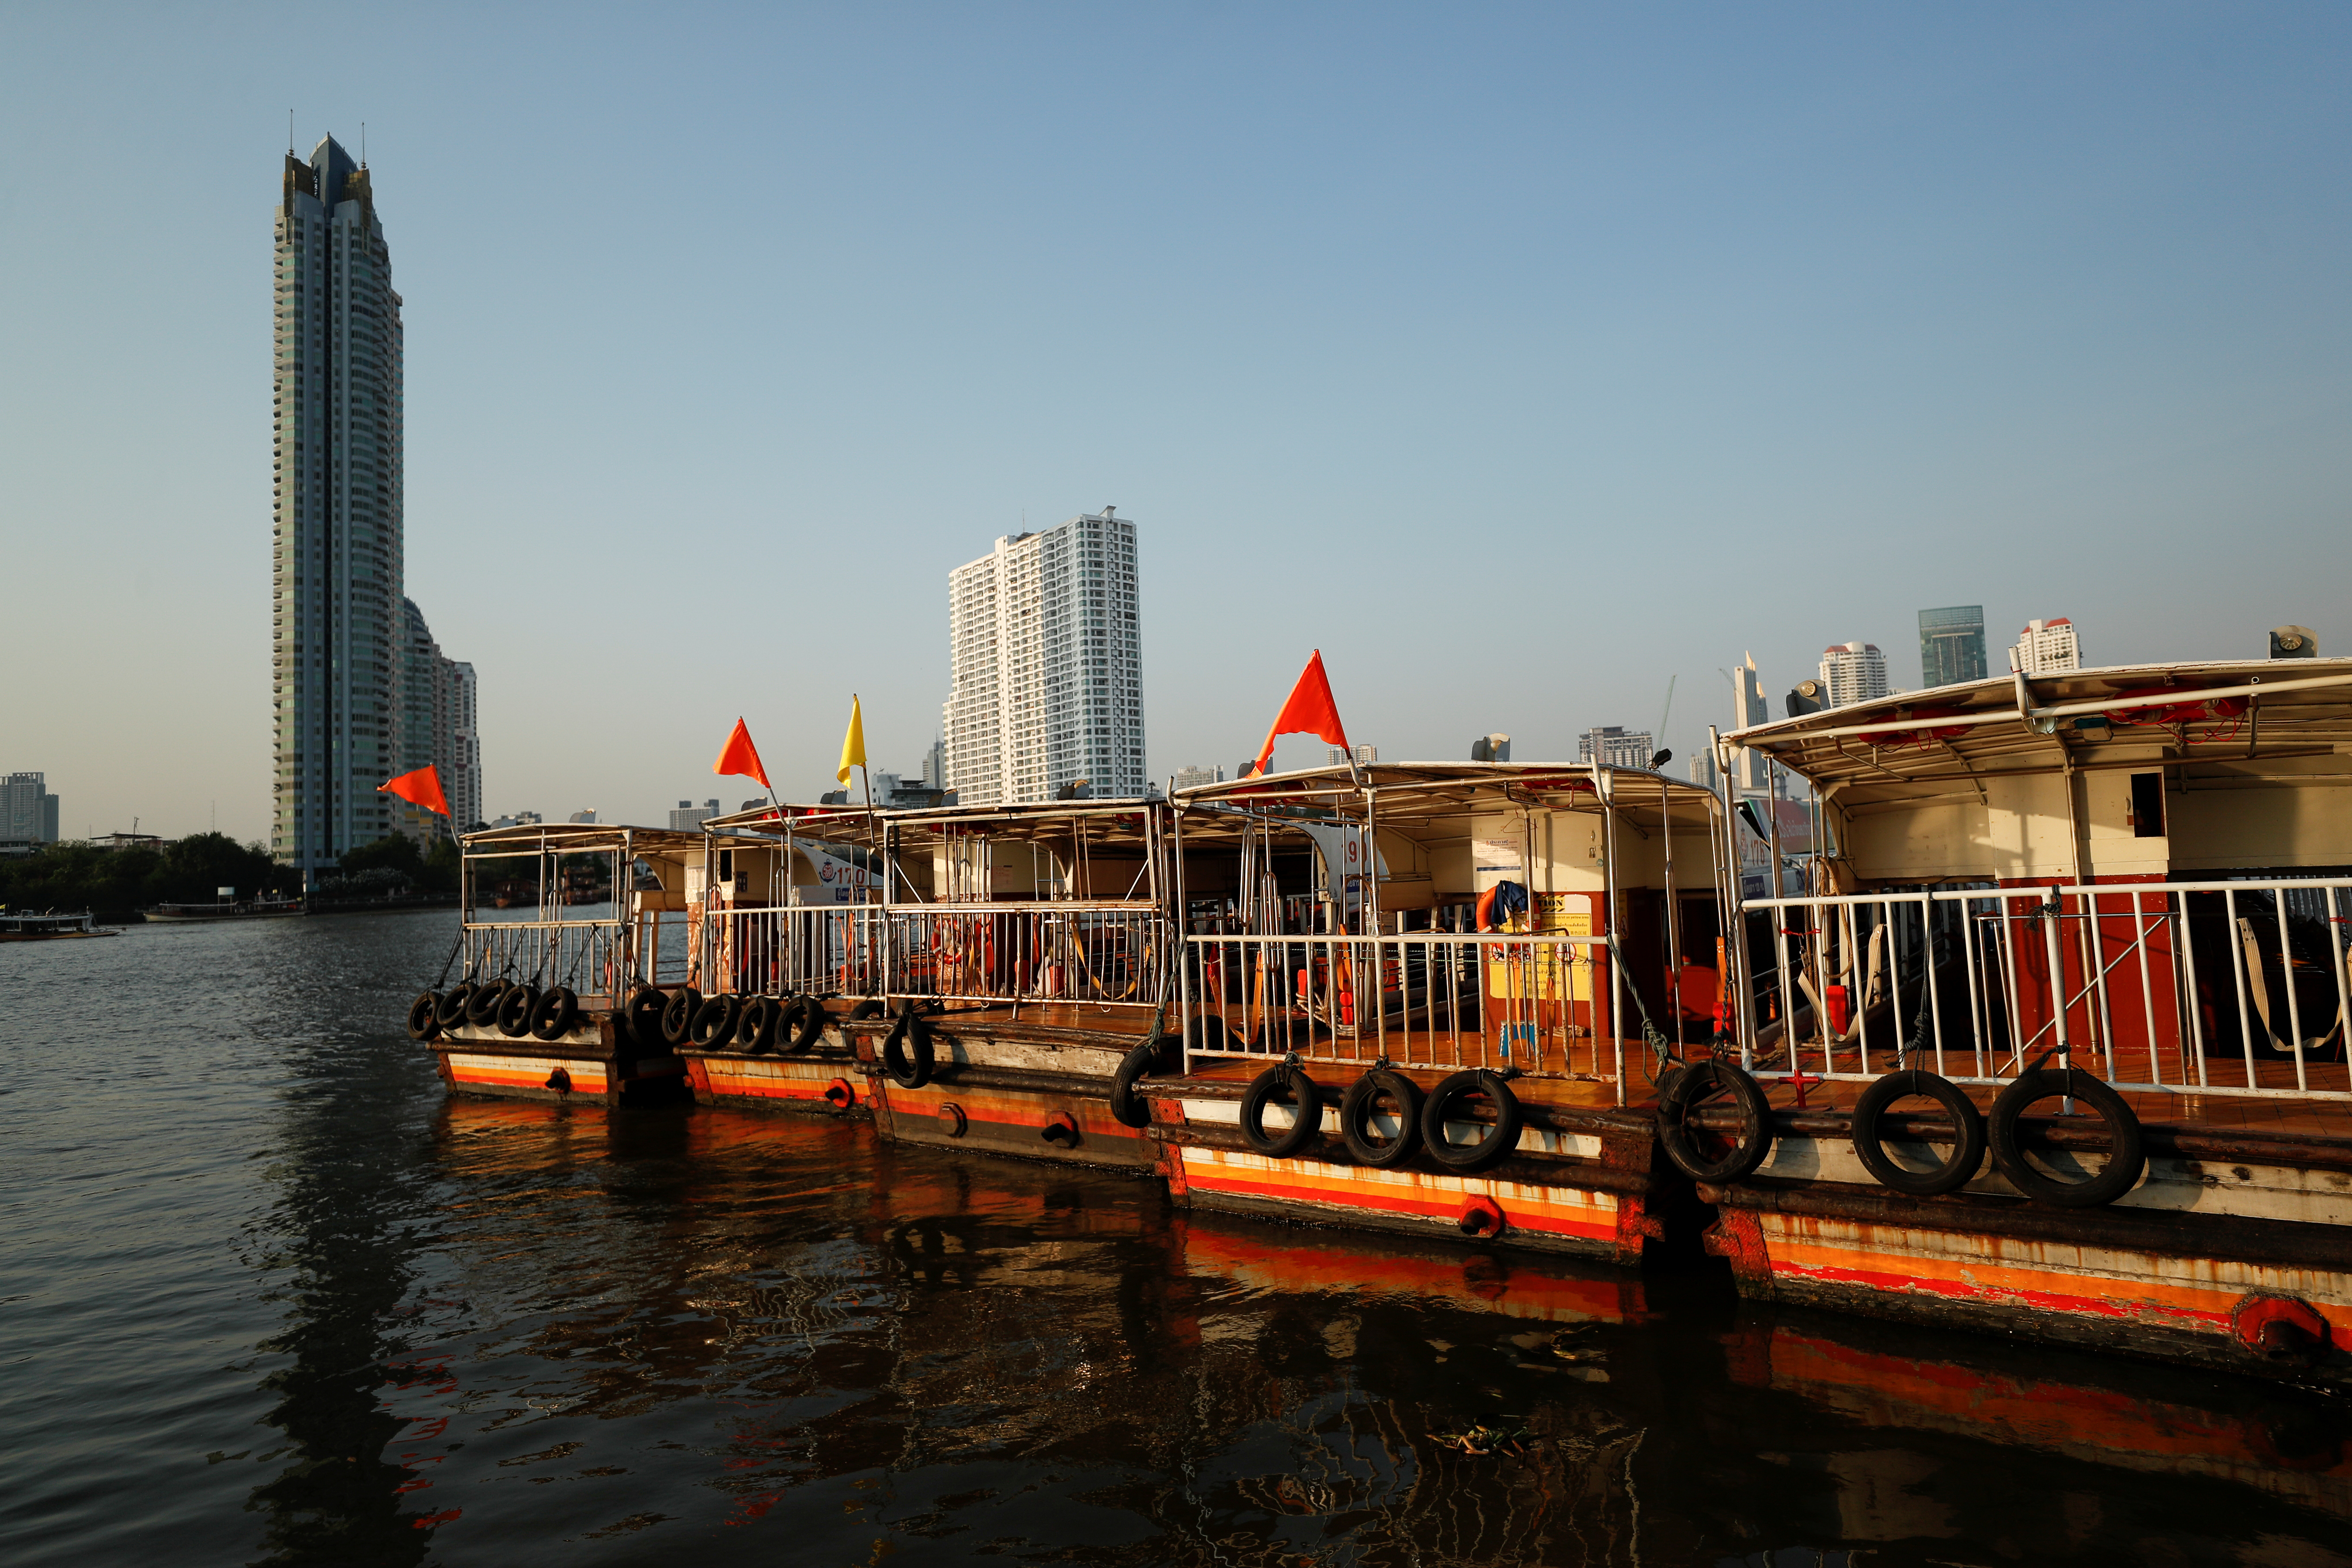 Boats that are used to transport tourists around the Chao Phraya river are seen idle due to travel bans and border closures from the global coronavirus disease (COVID-19) outbreak in downtown Bangkok, Thailand February 4, 2021. Picture taken February 4, 2021. REUTERS/Jorge Silva